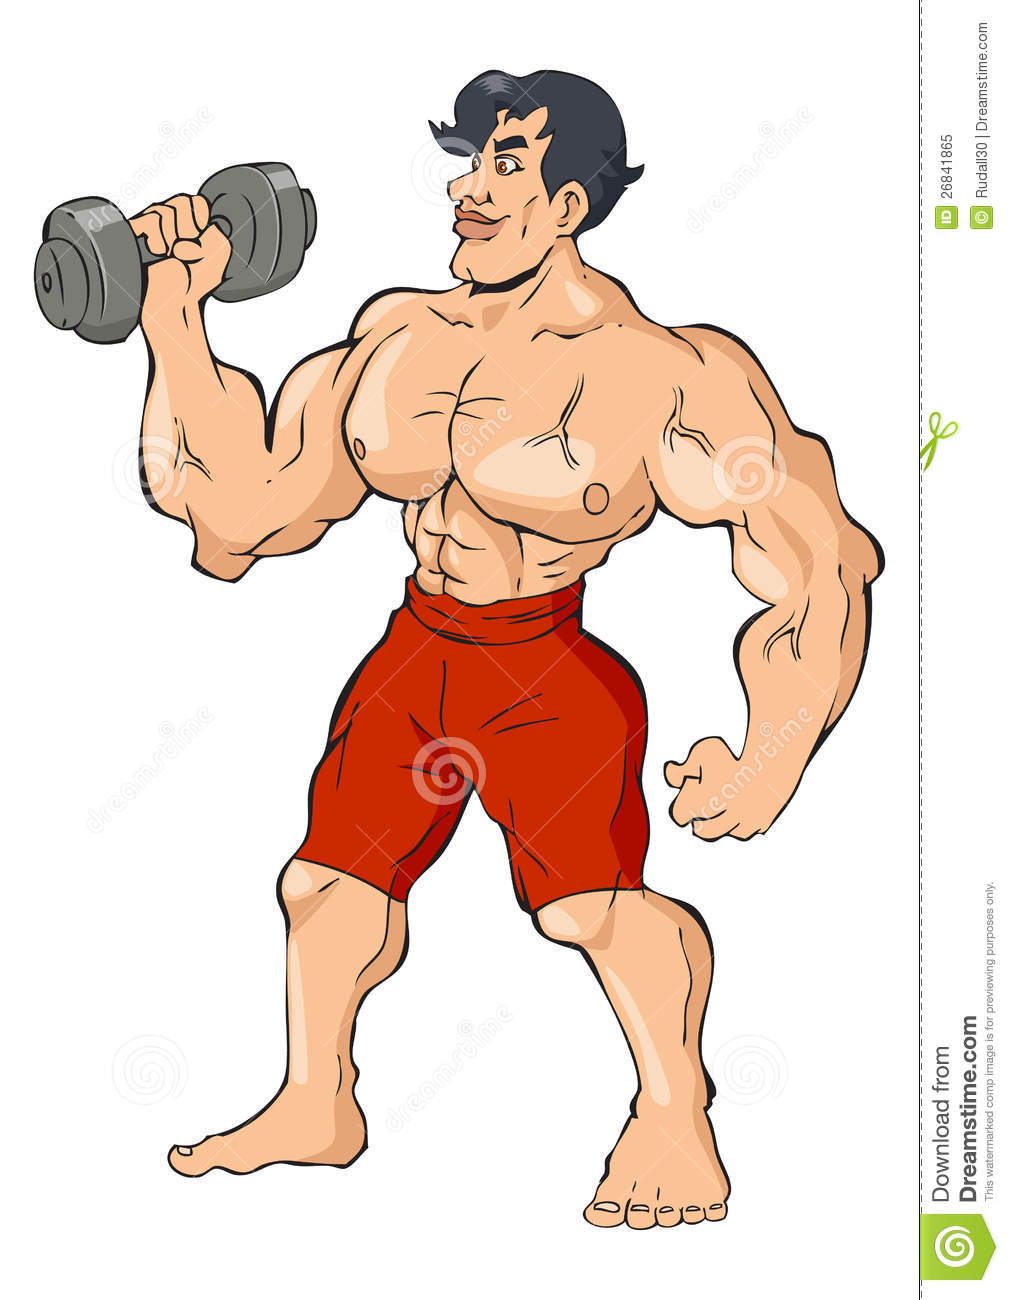 Body builder royalty free stock photo image 26841865 - Cartoon body builder ...